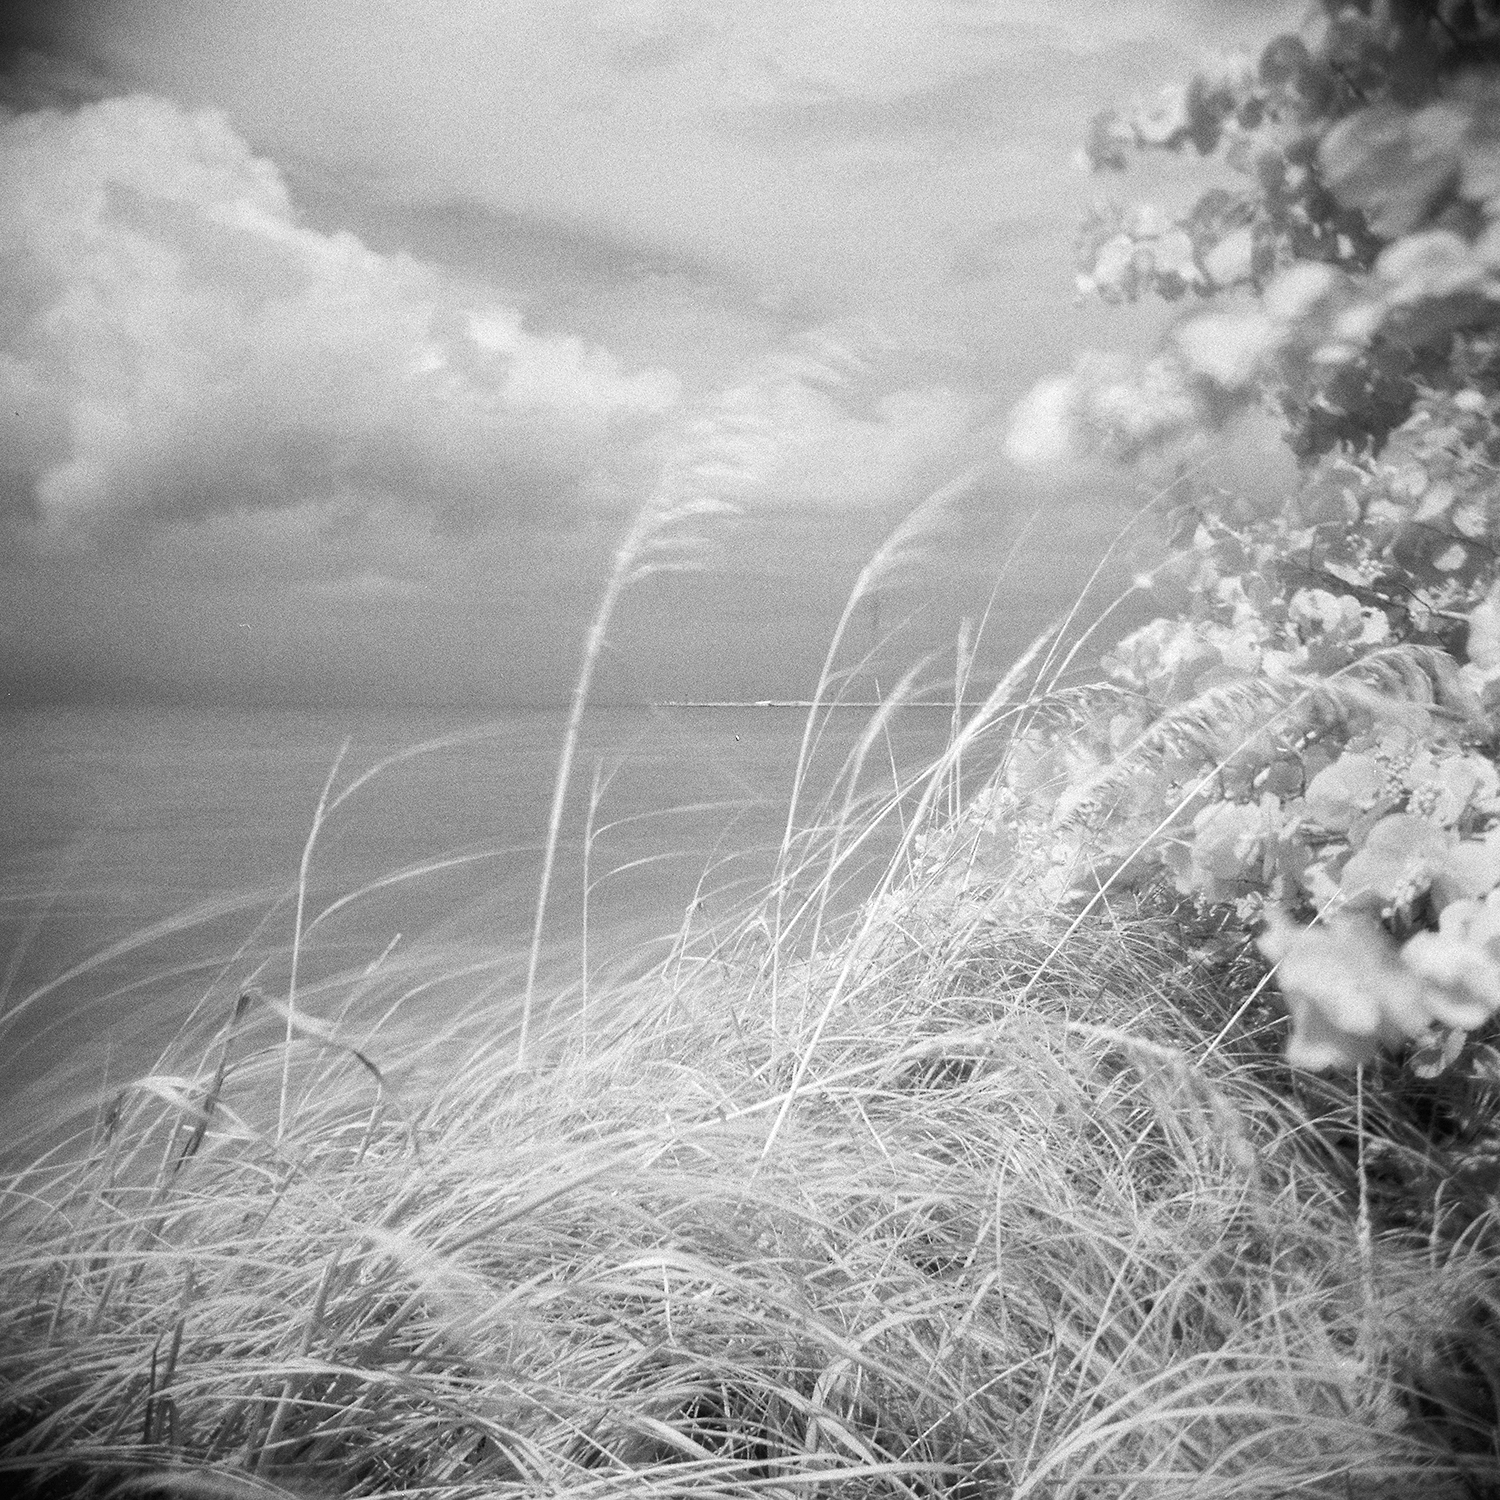 emma jay starr photography analogue infrared film key west .jpg